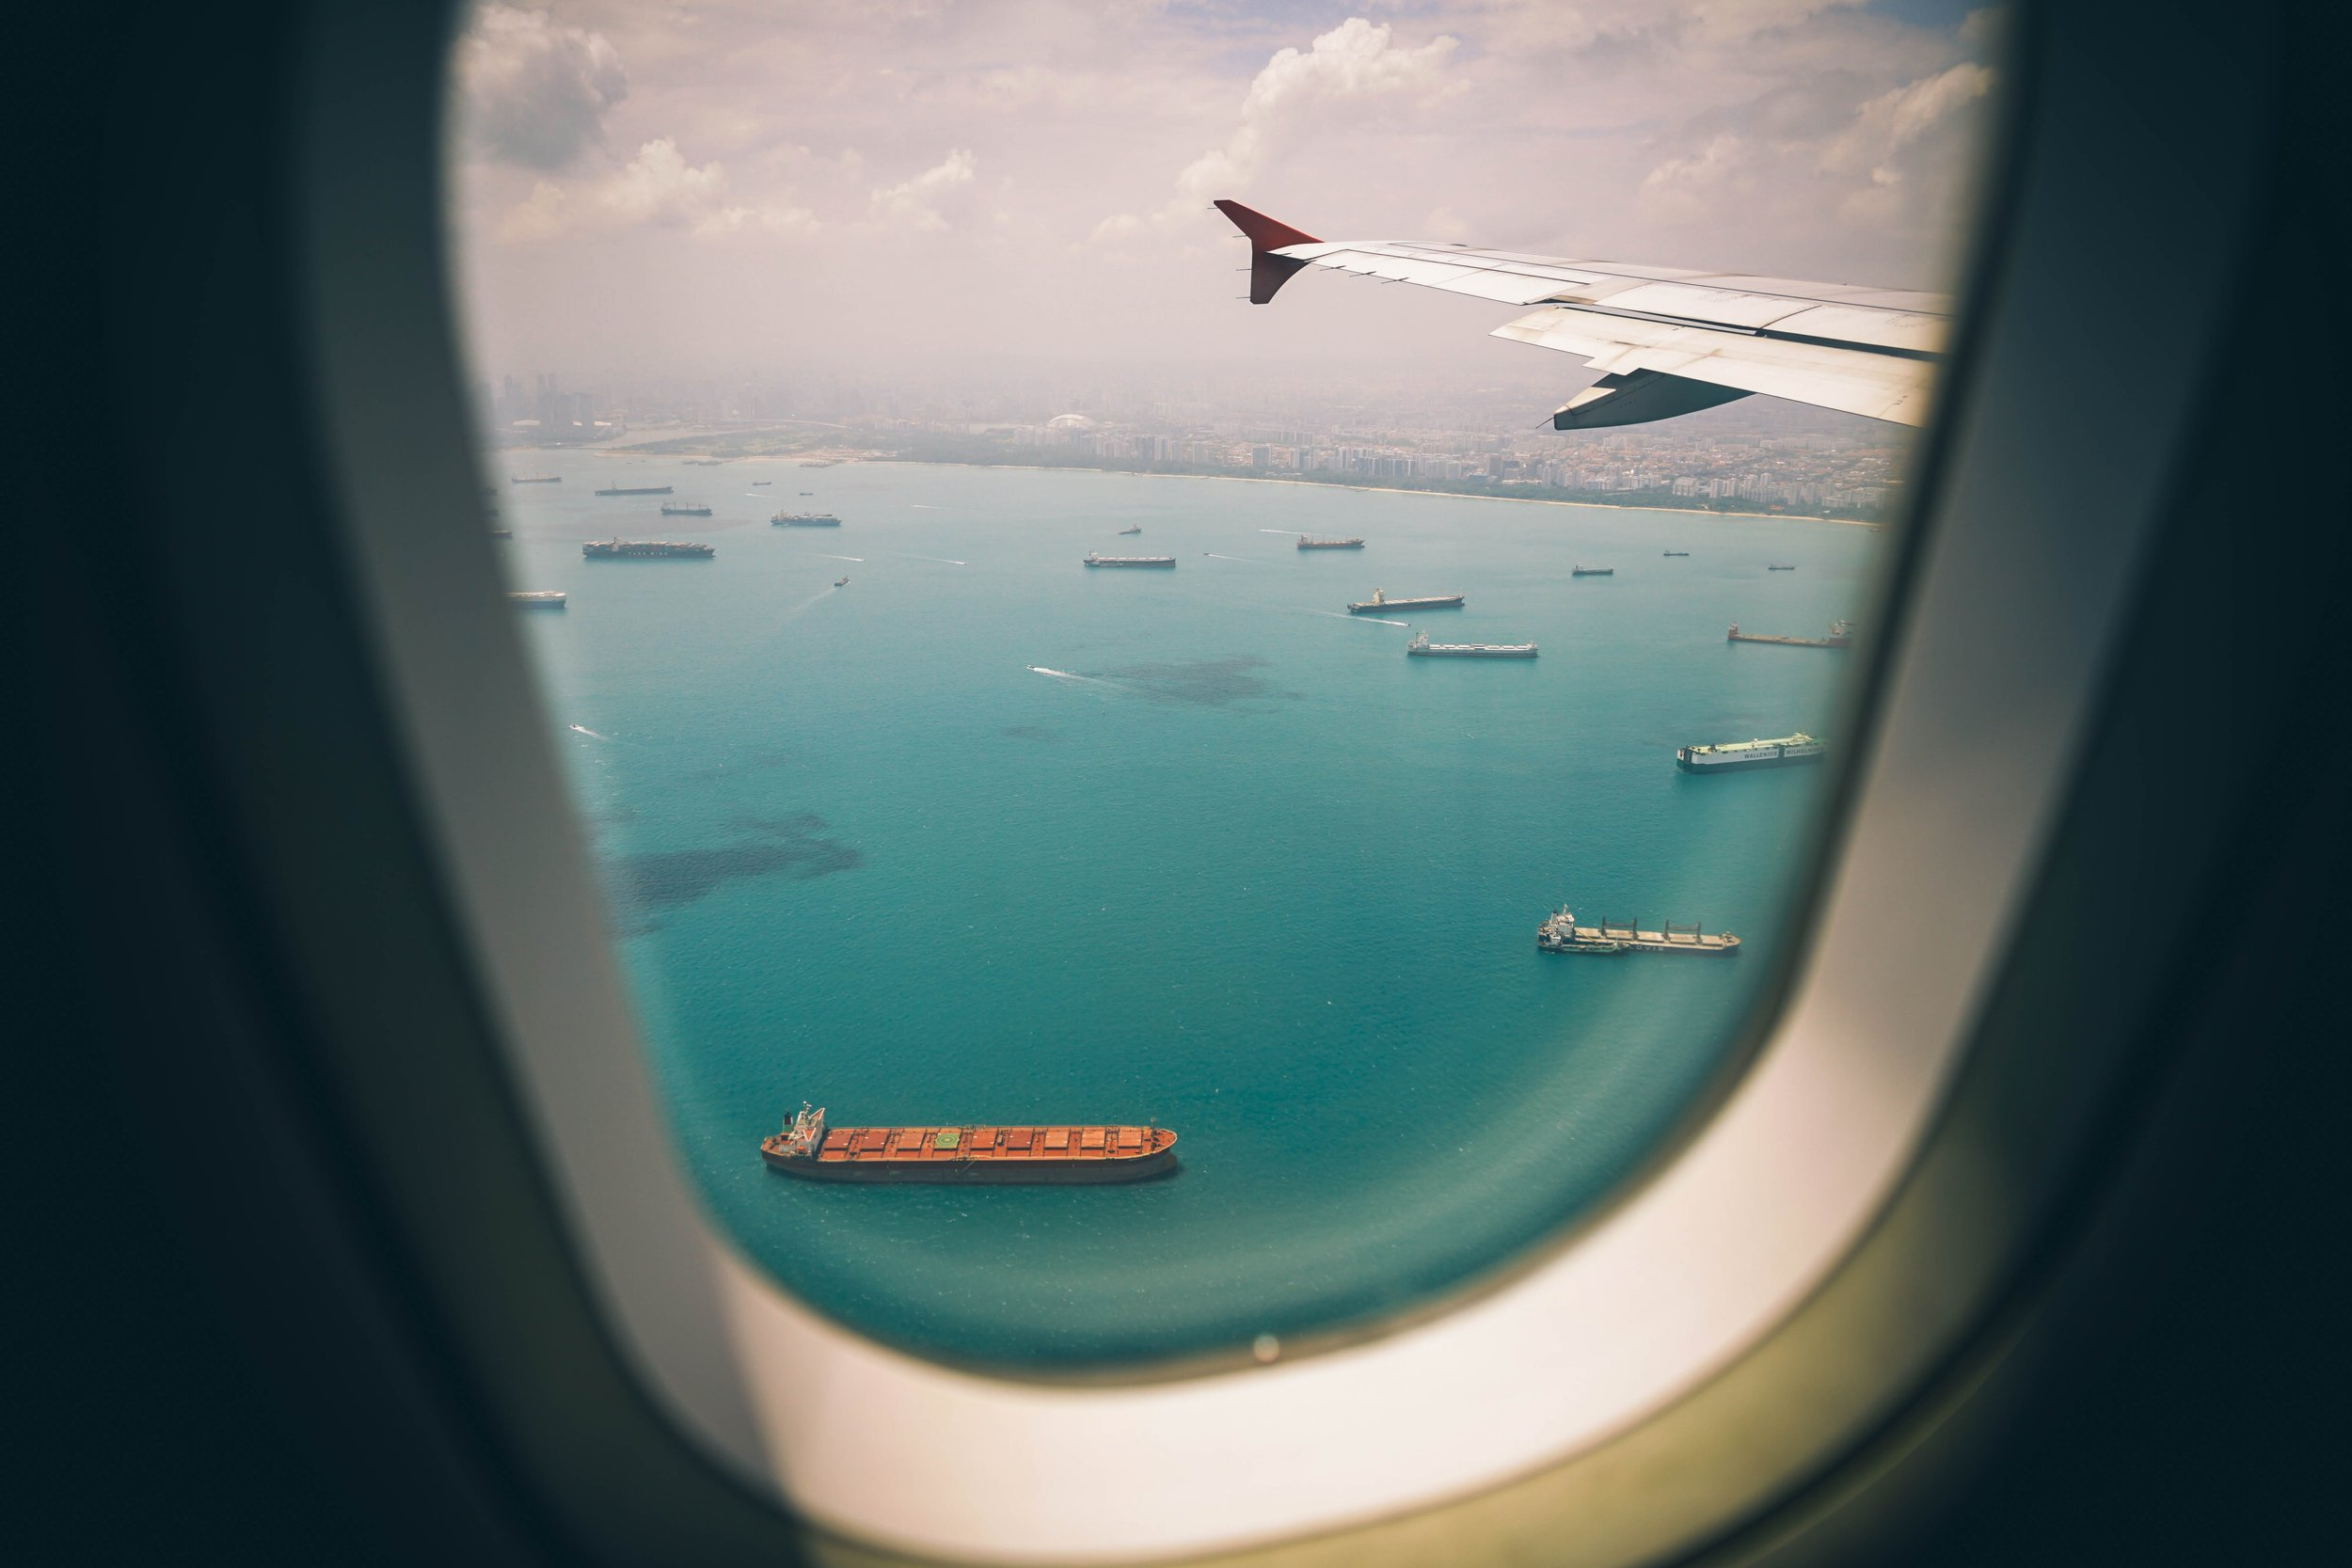 1. Overpaying flight tickets